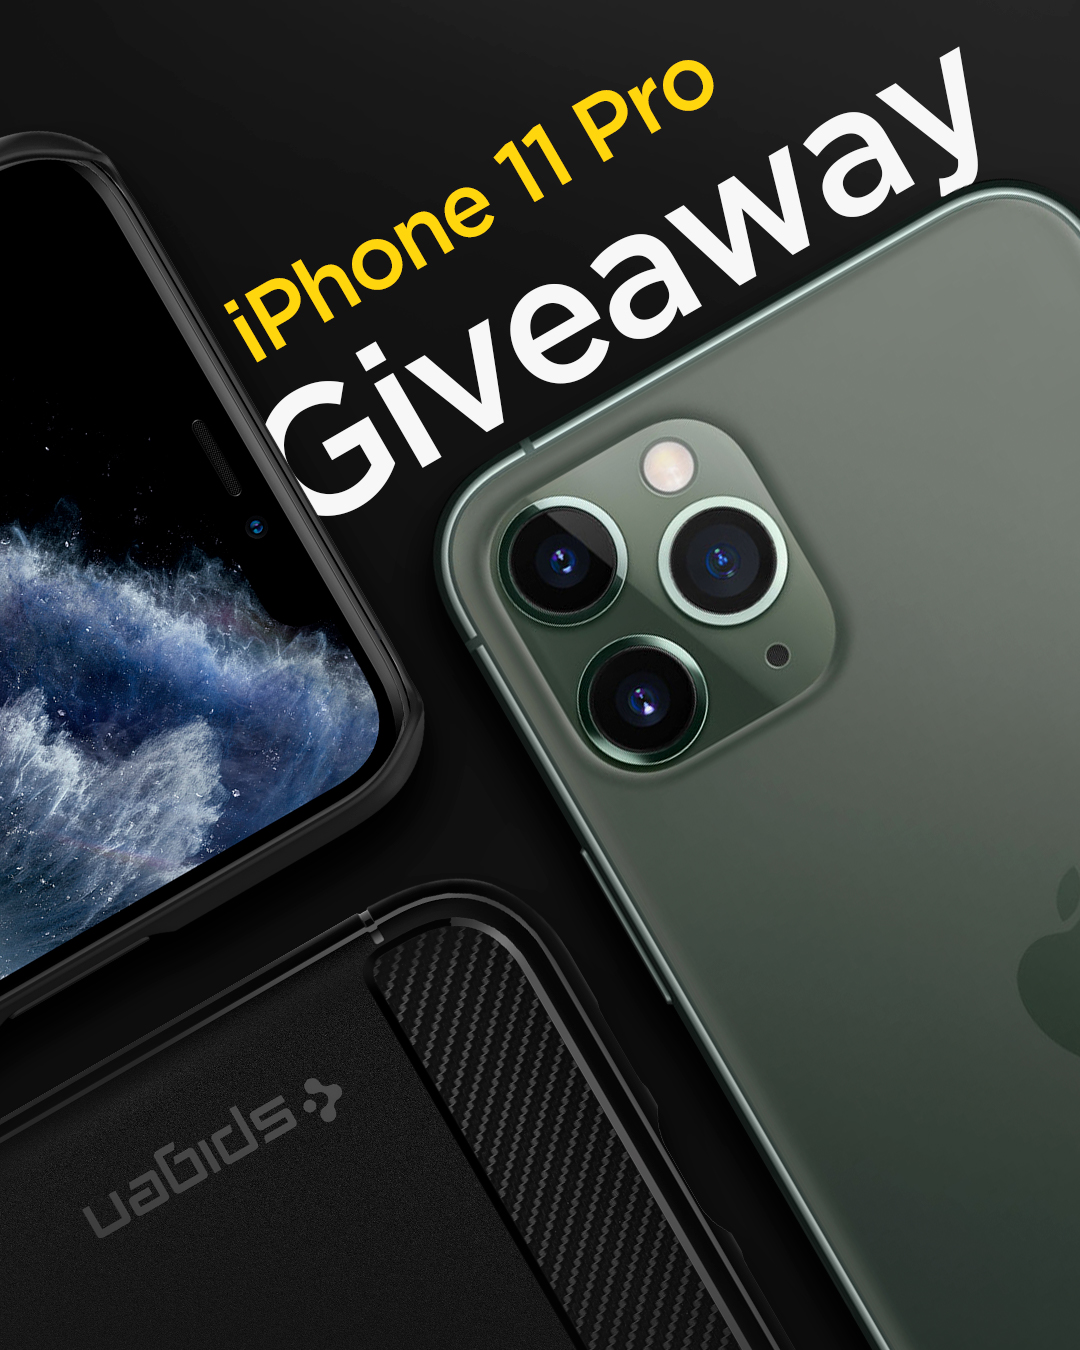 online contests, sweepstakes and giveaways - Win a FREE Apple iPhone 11 Pro Device!